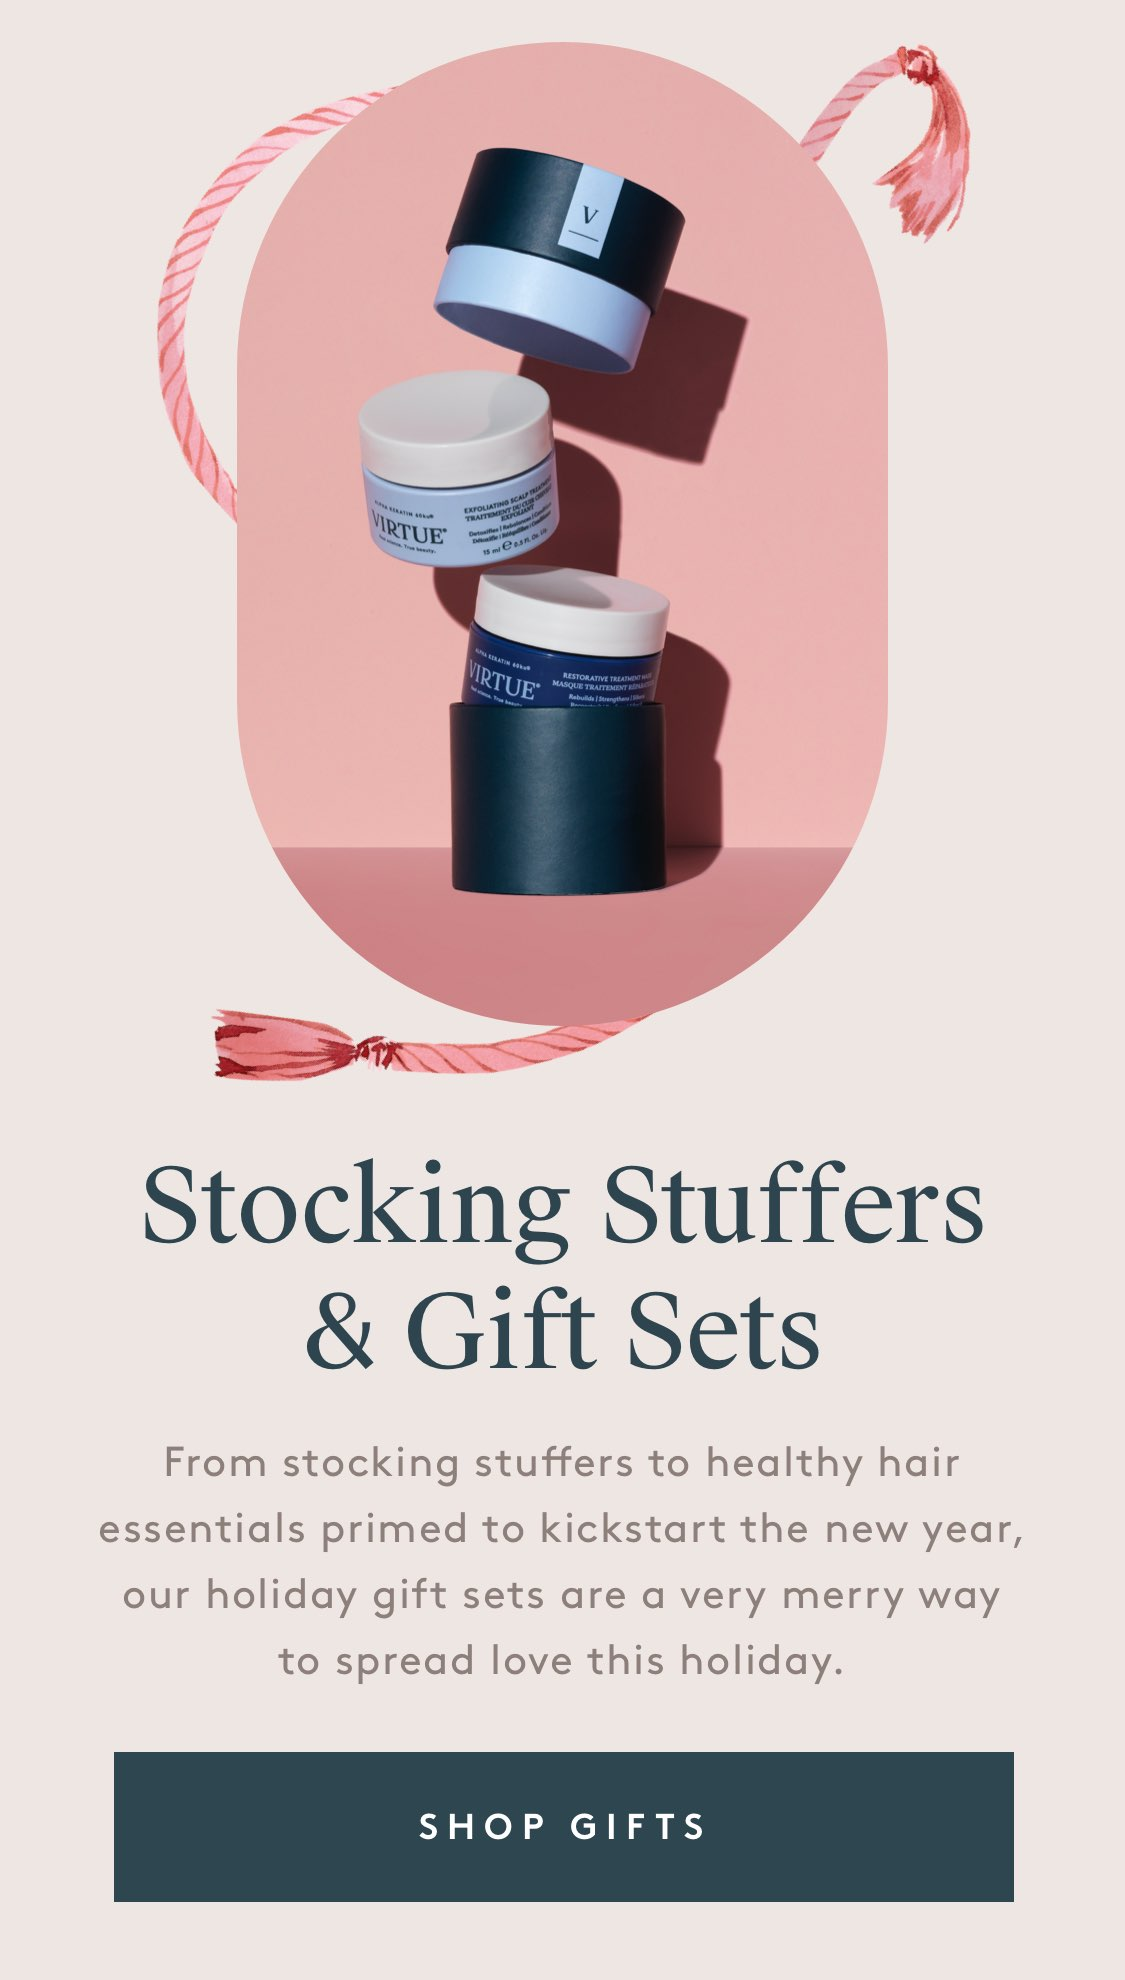 Stocking Stuffers & Gift Sets